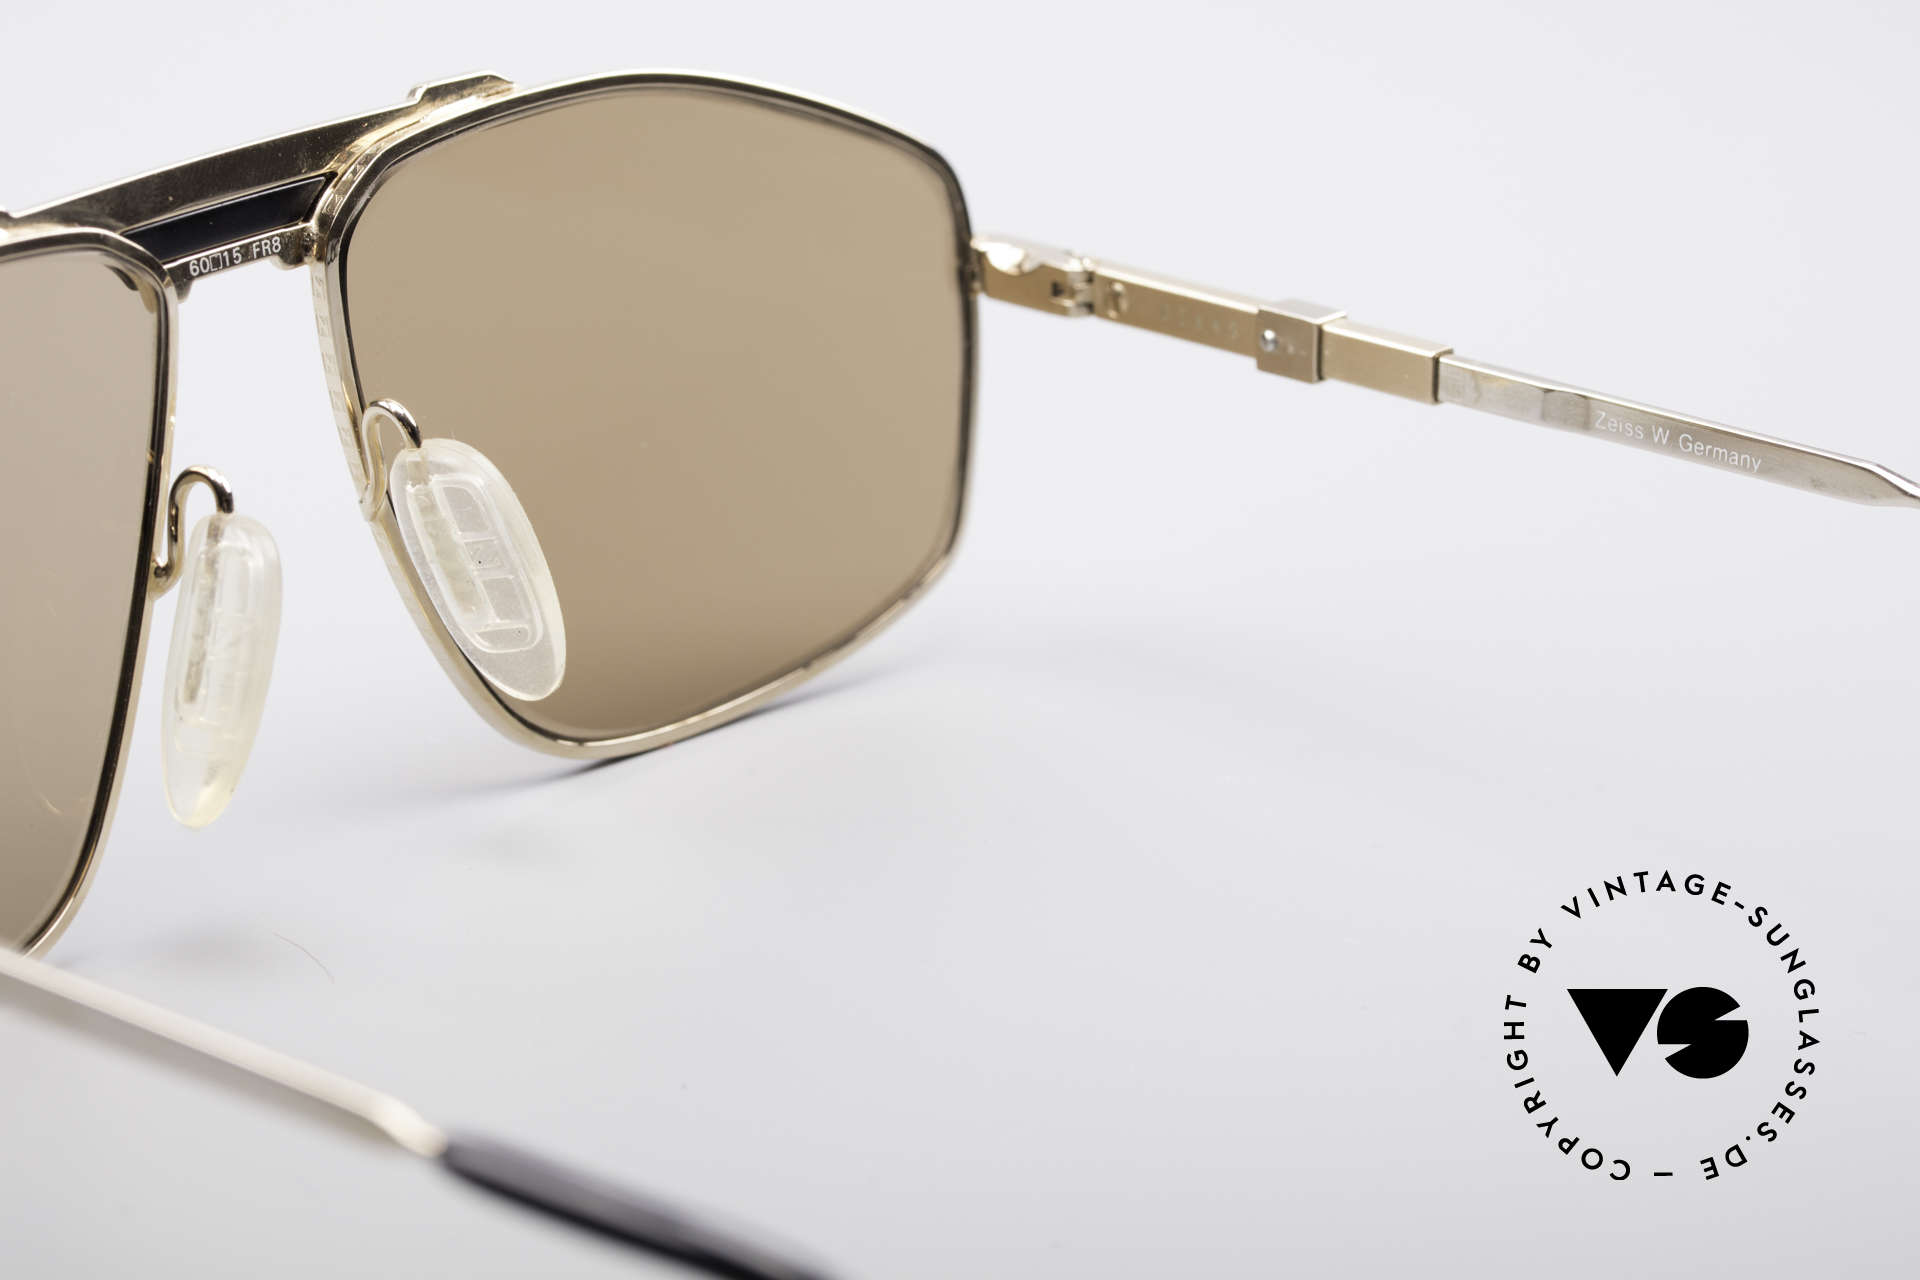 Zeiss 9925 True Gentlemen's 80's Shades, components and craftsmanship at its best (Carl Zeiss), Made for Men